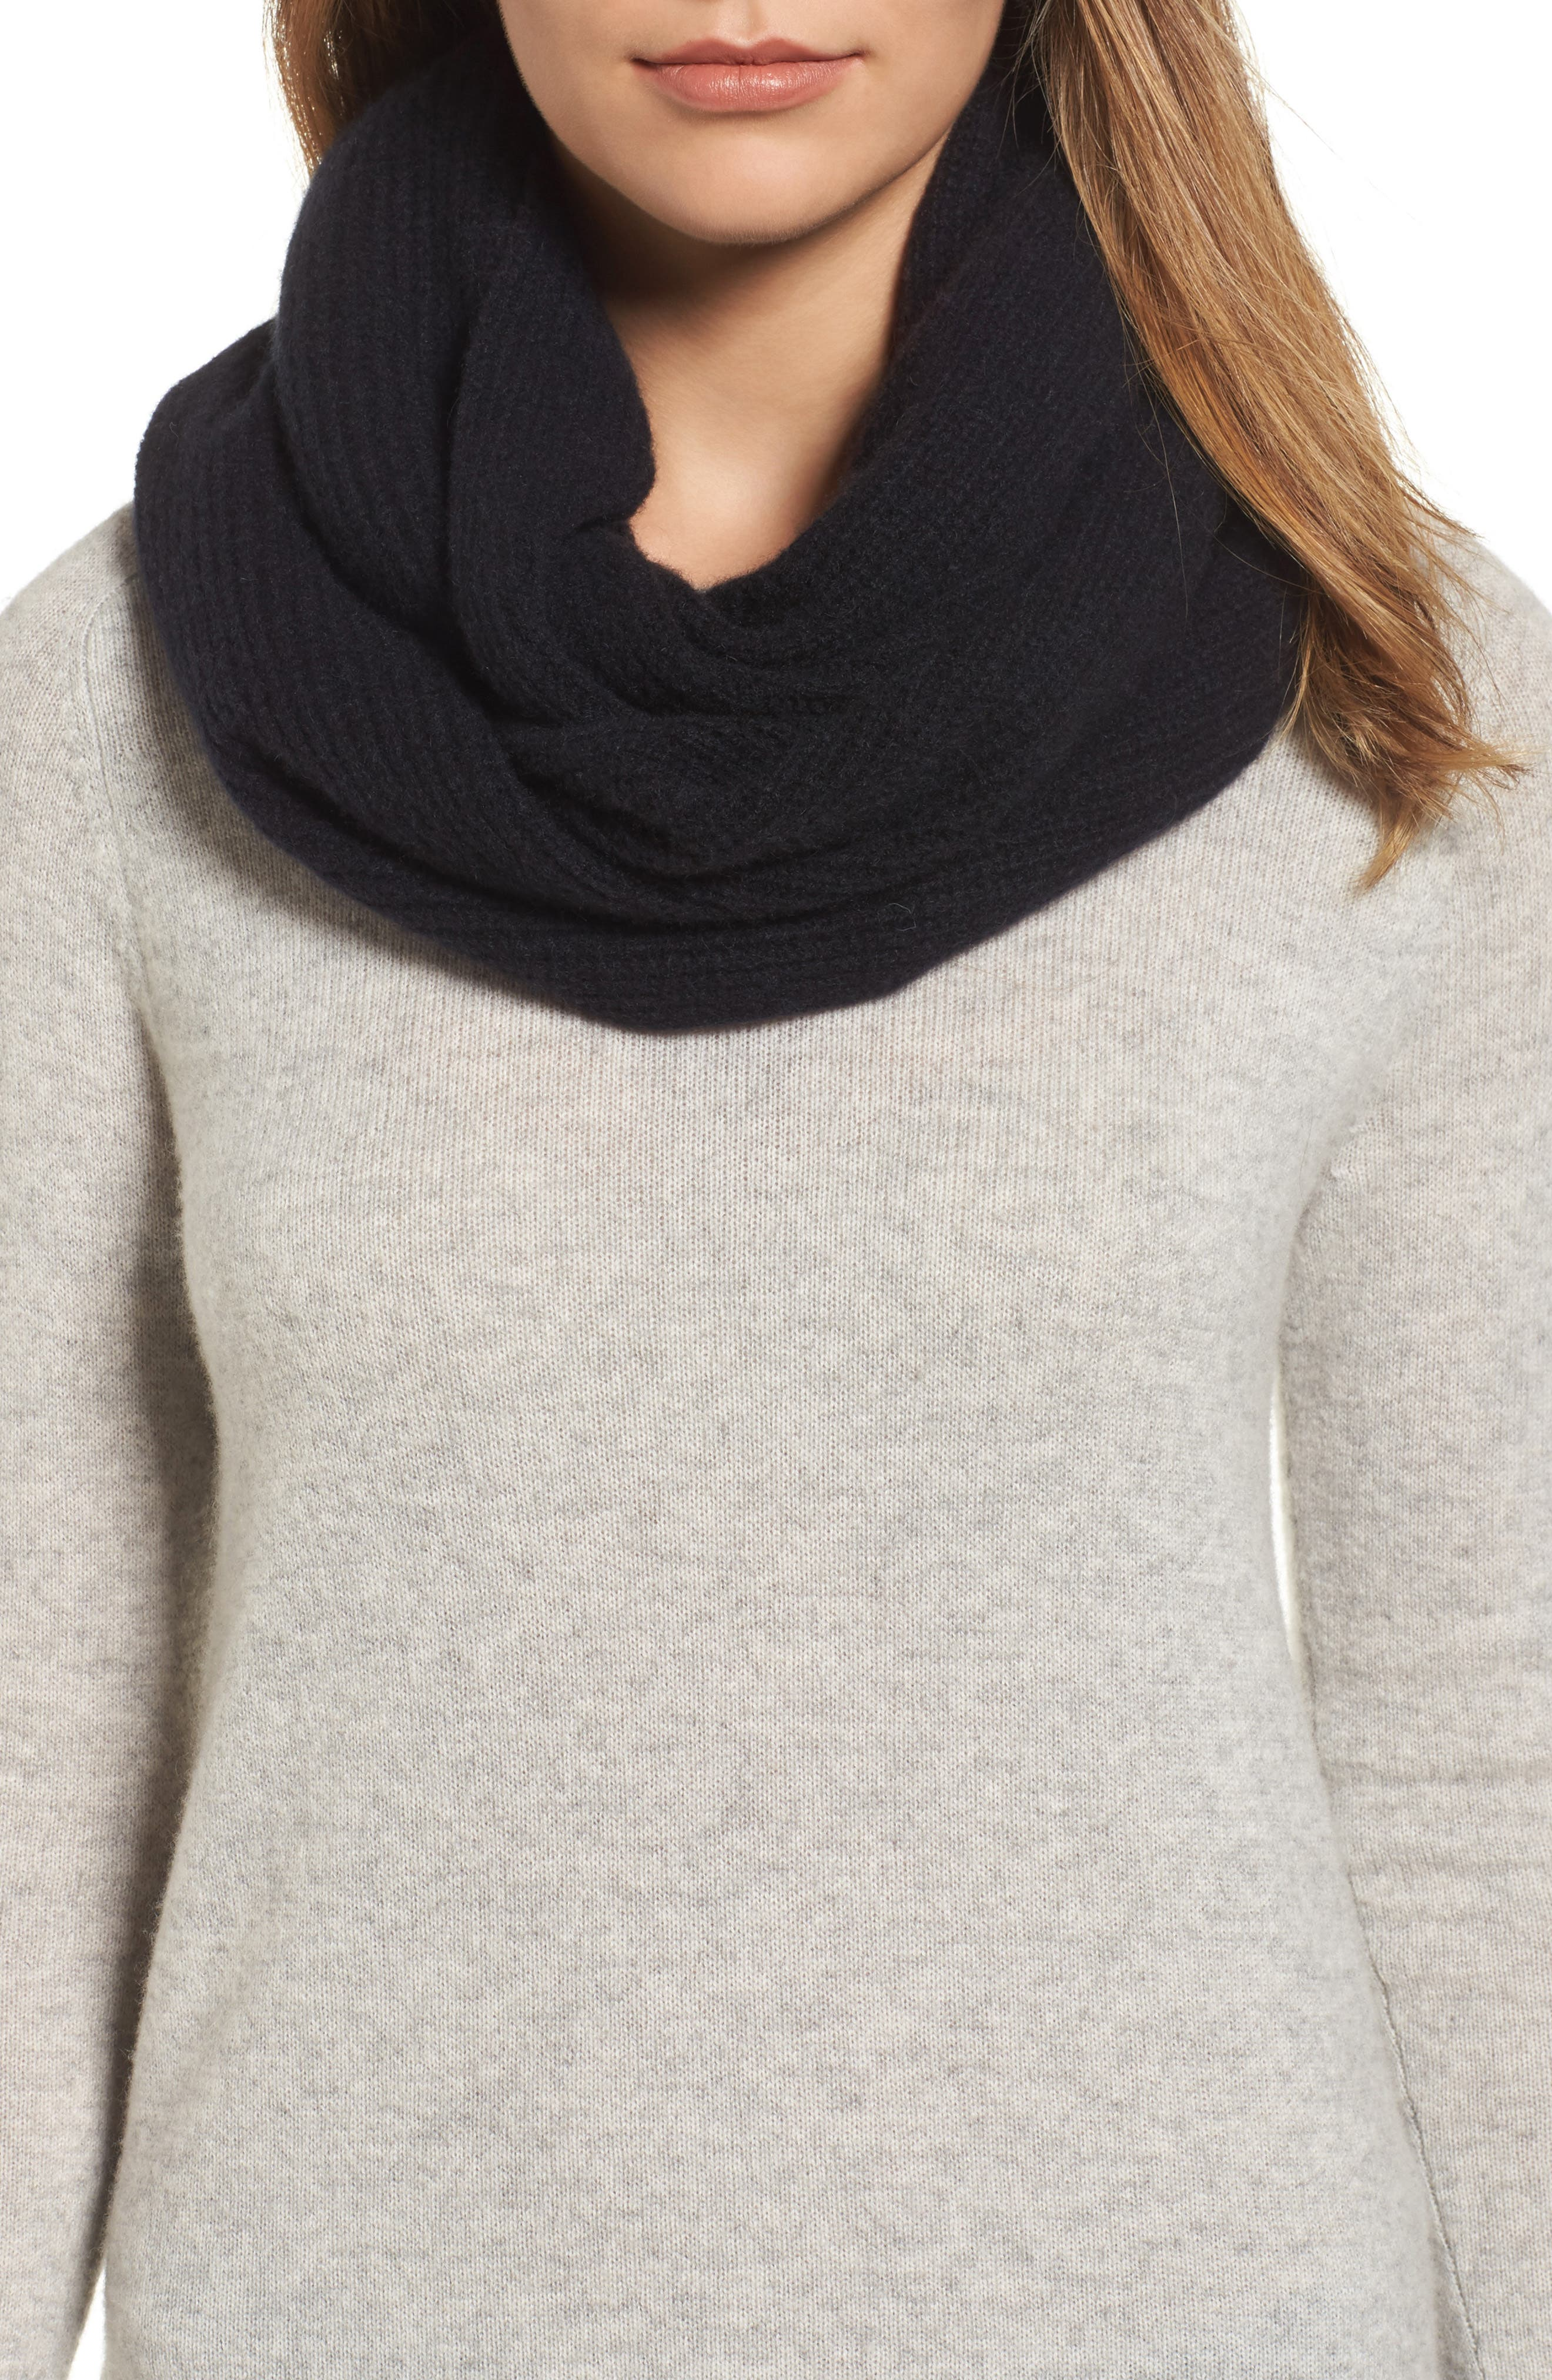 Cashmere Infinity Scarf,                         Main,                         color, 001